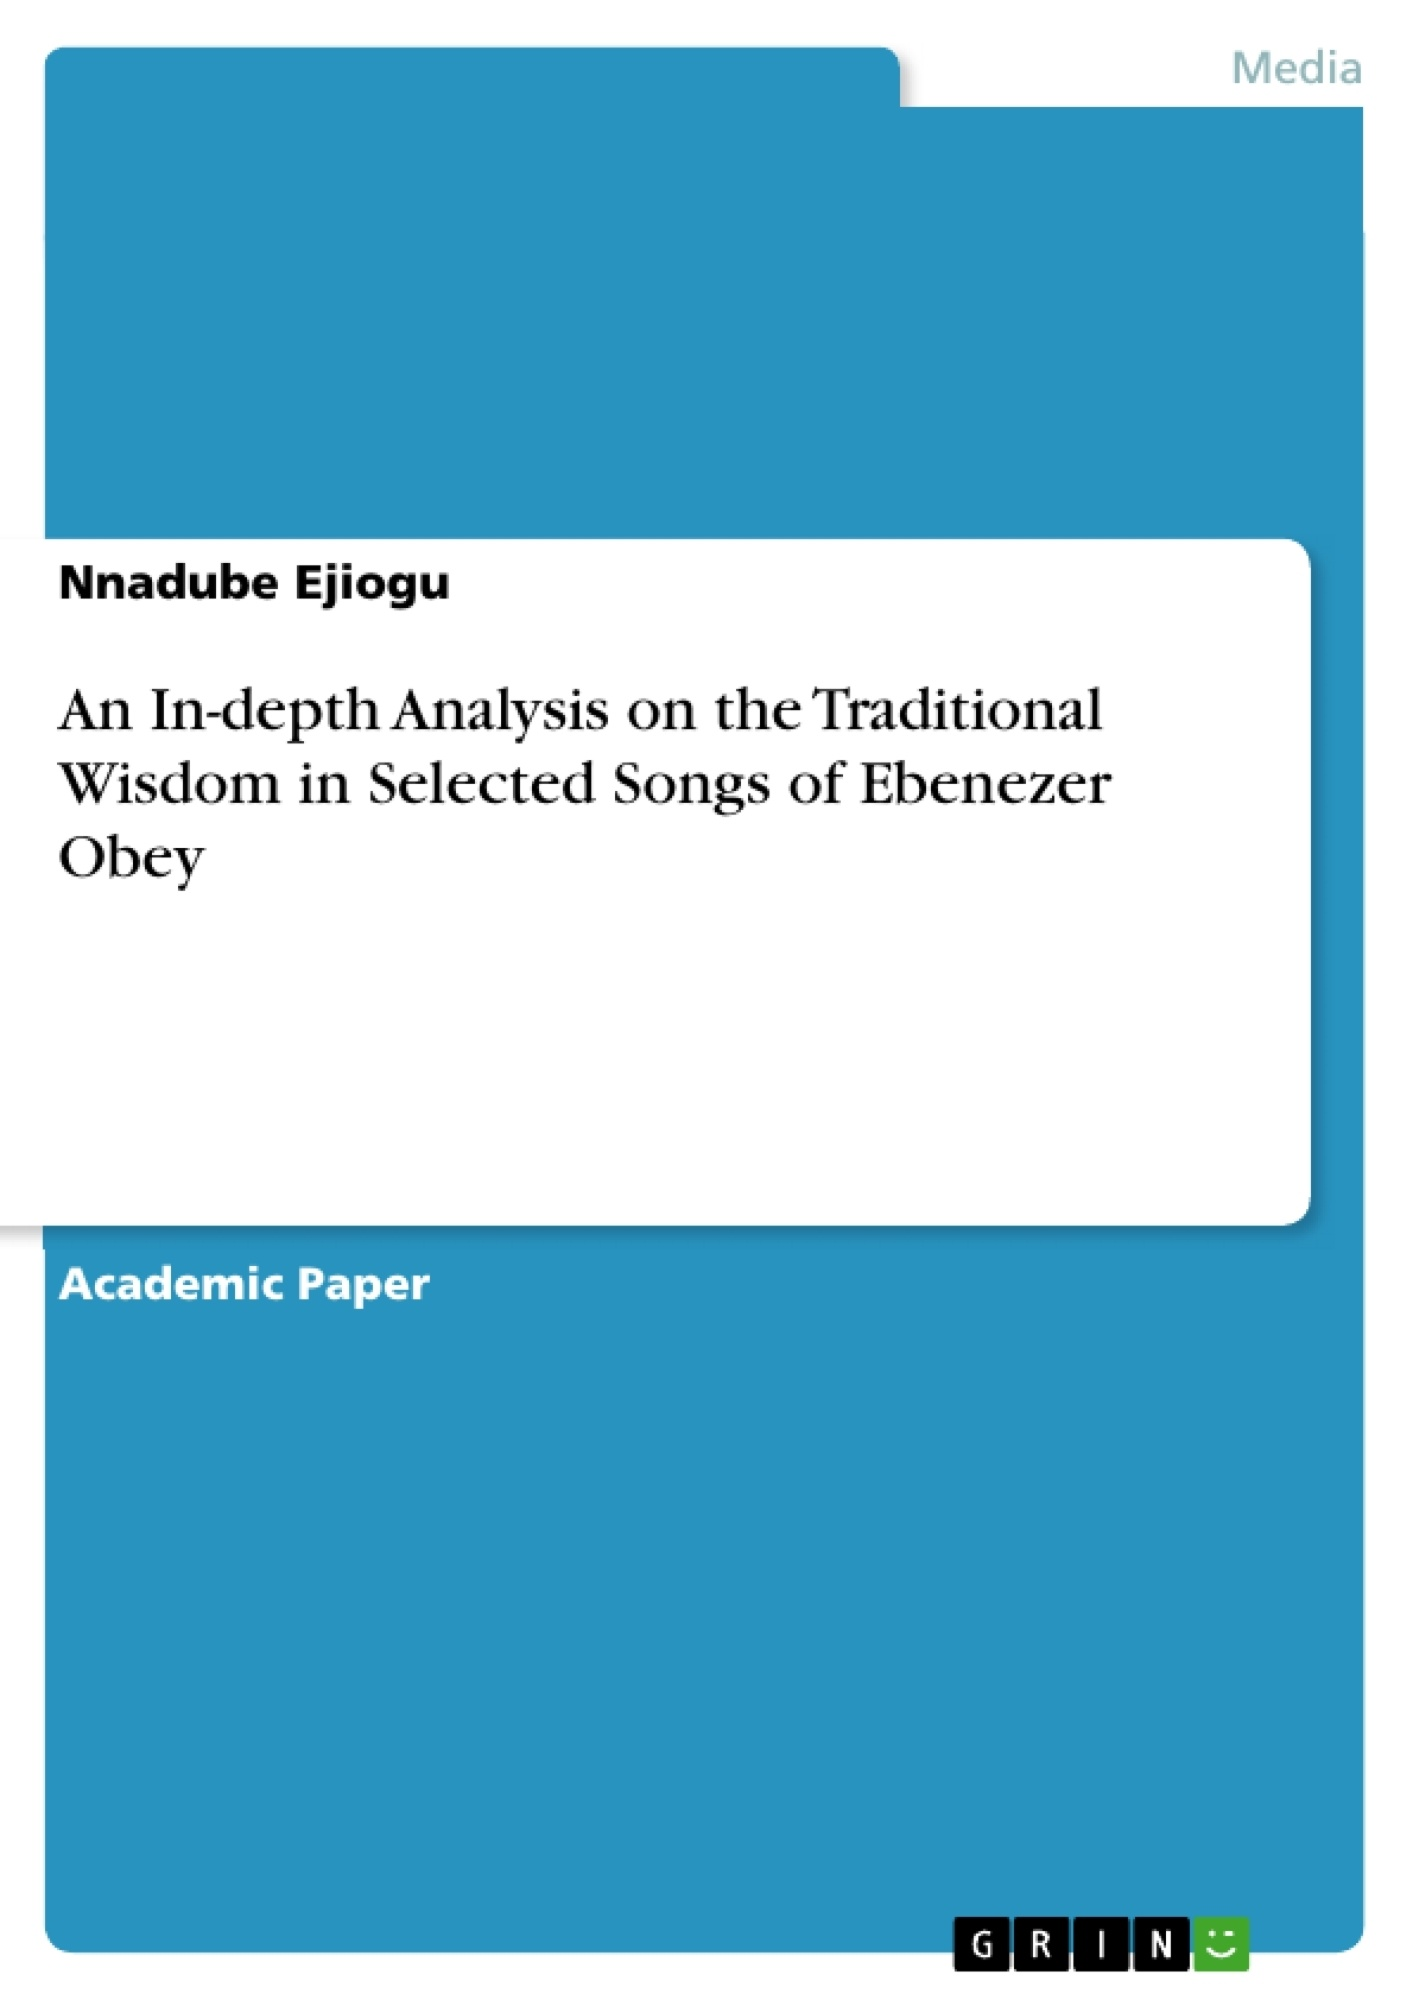 Title: An In-depth Analysis on the Traditional Wisdom in Selected Songs of Ebenezer Obey